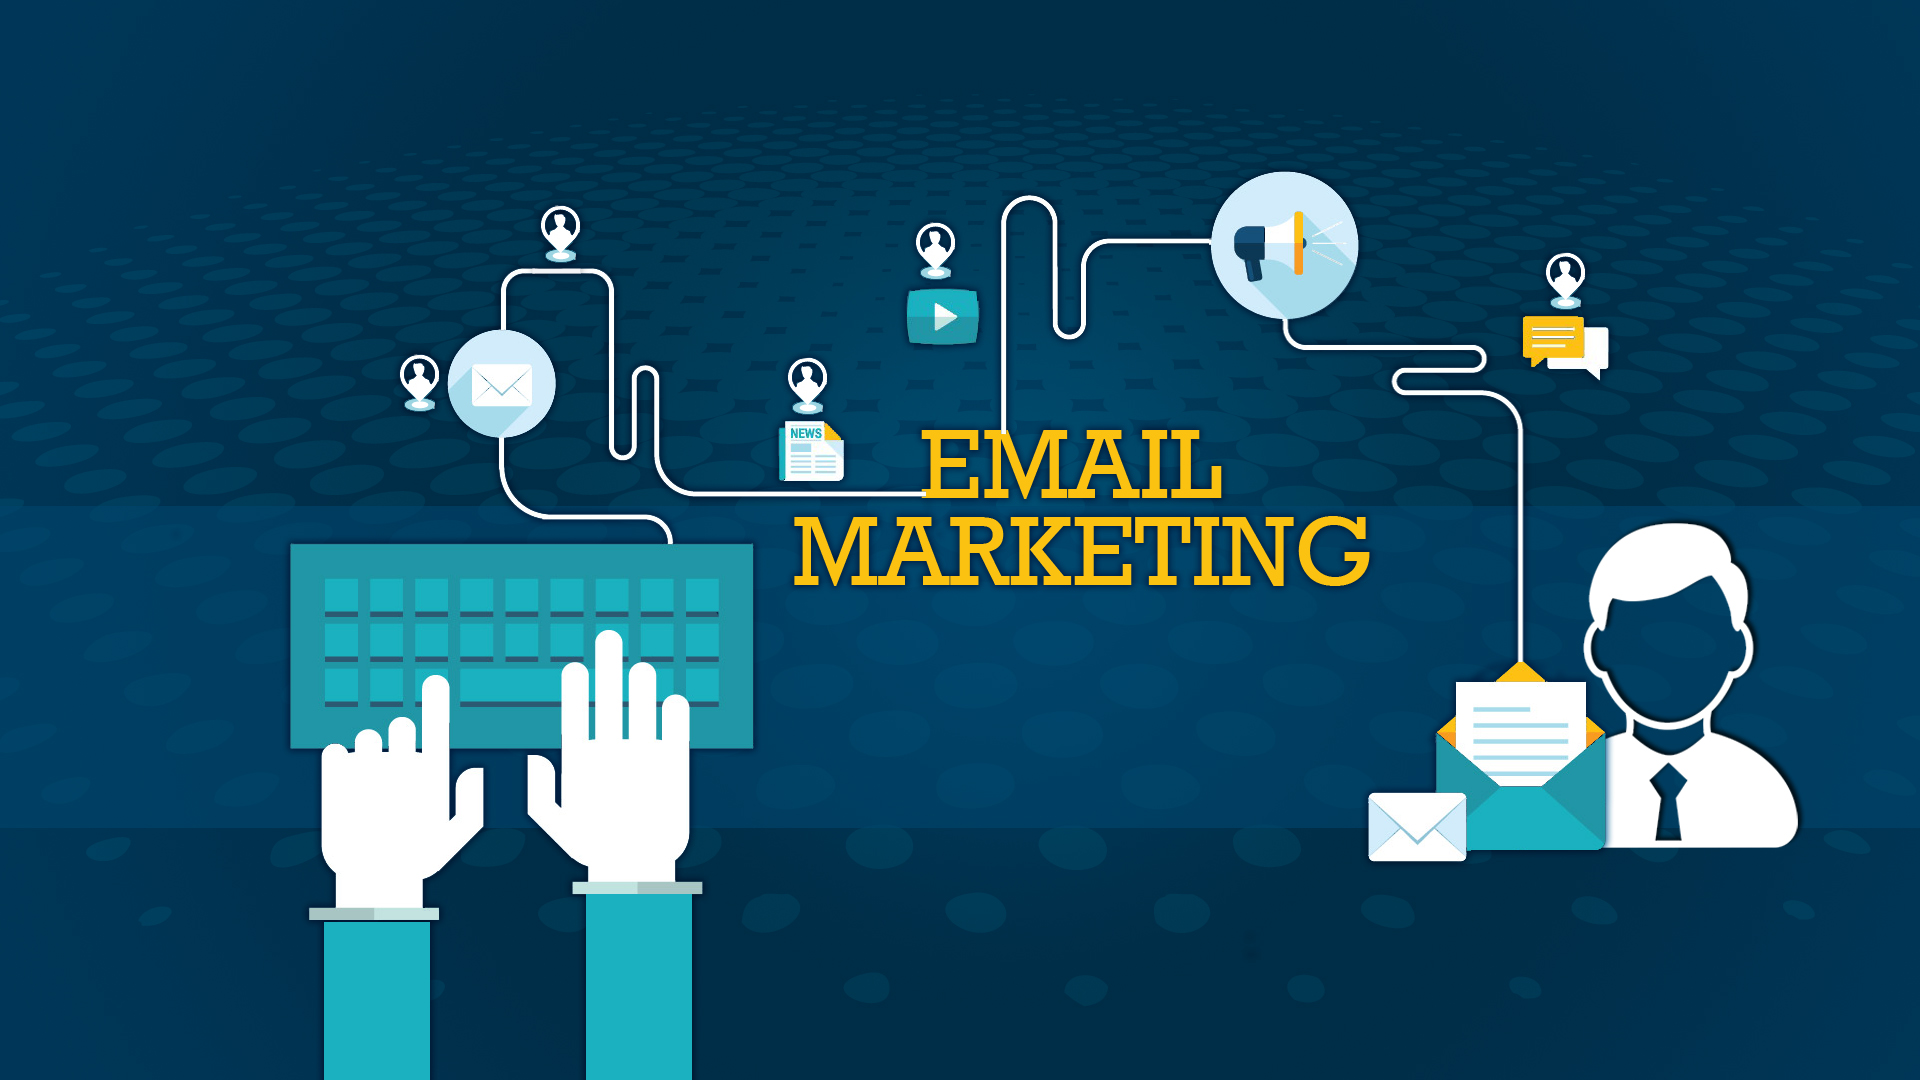 How-To-Do-To-Improve-Your-Email-Marketing-Campaign-Part-3-2